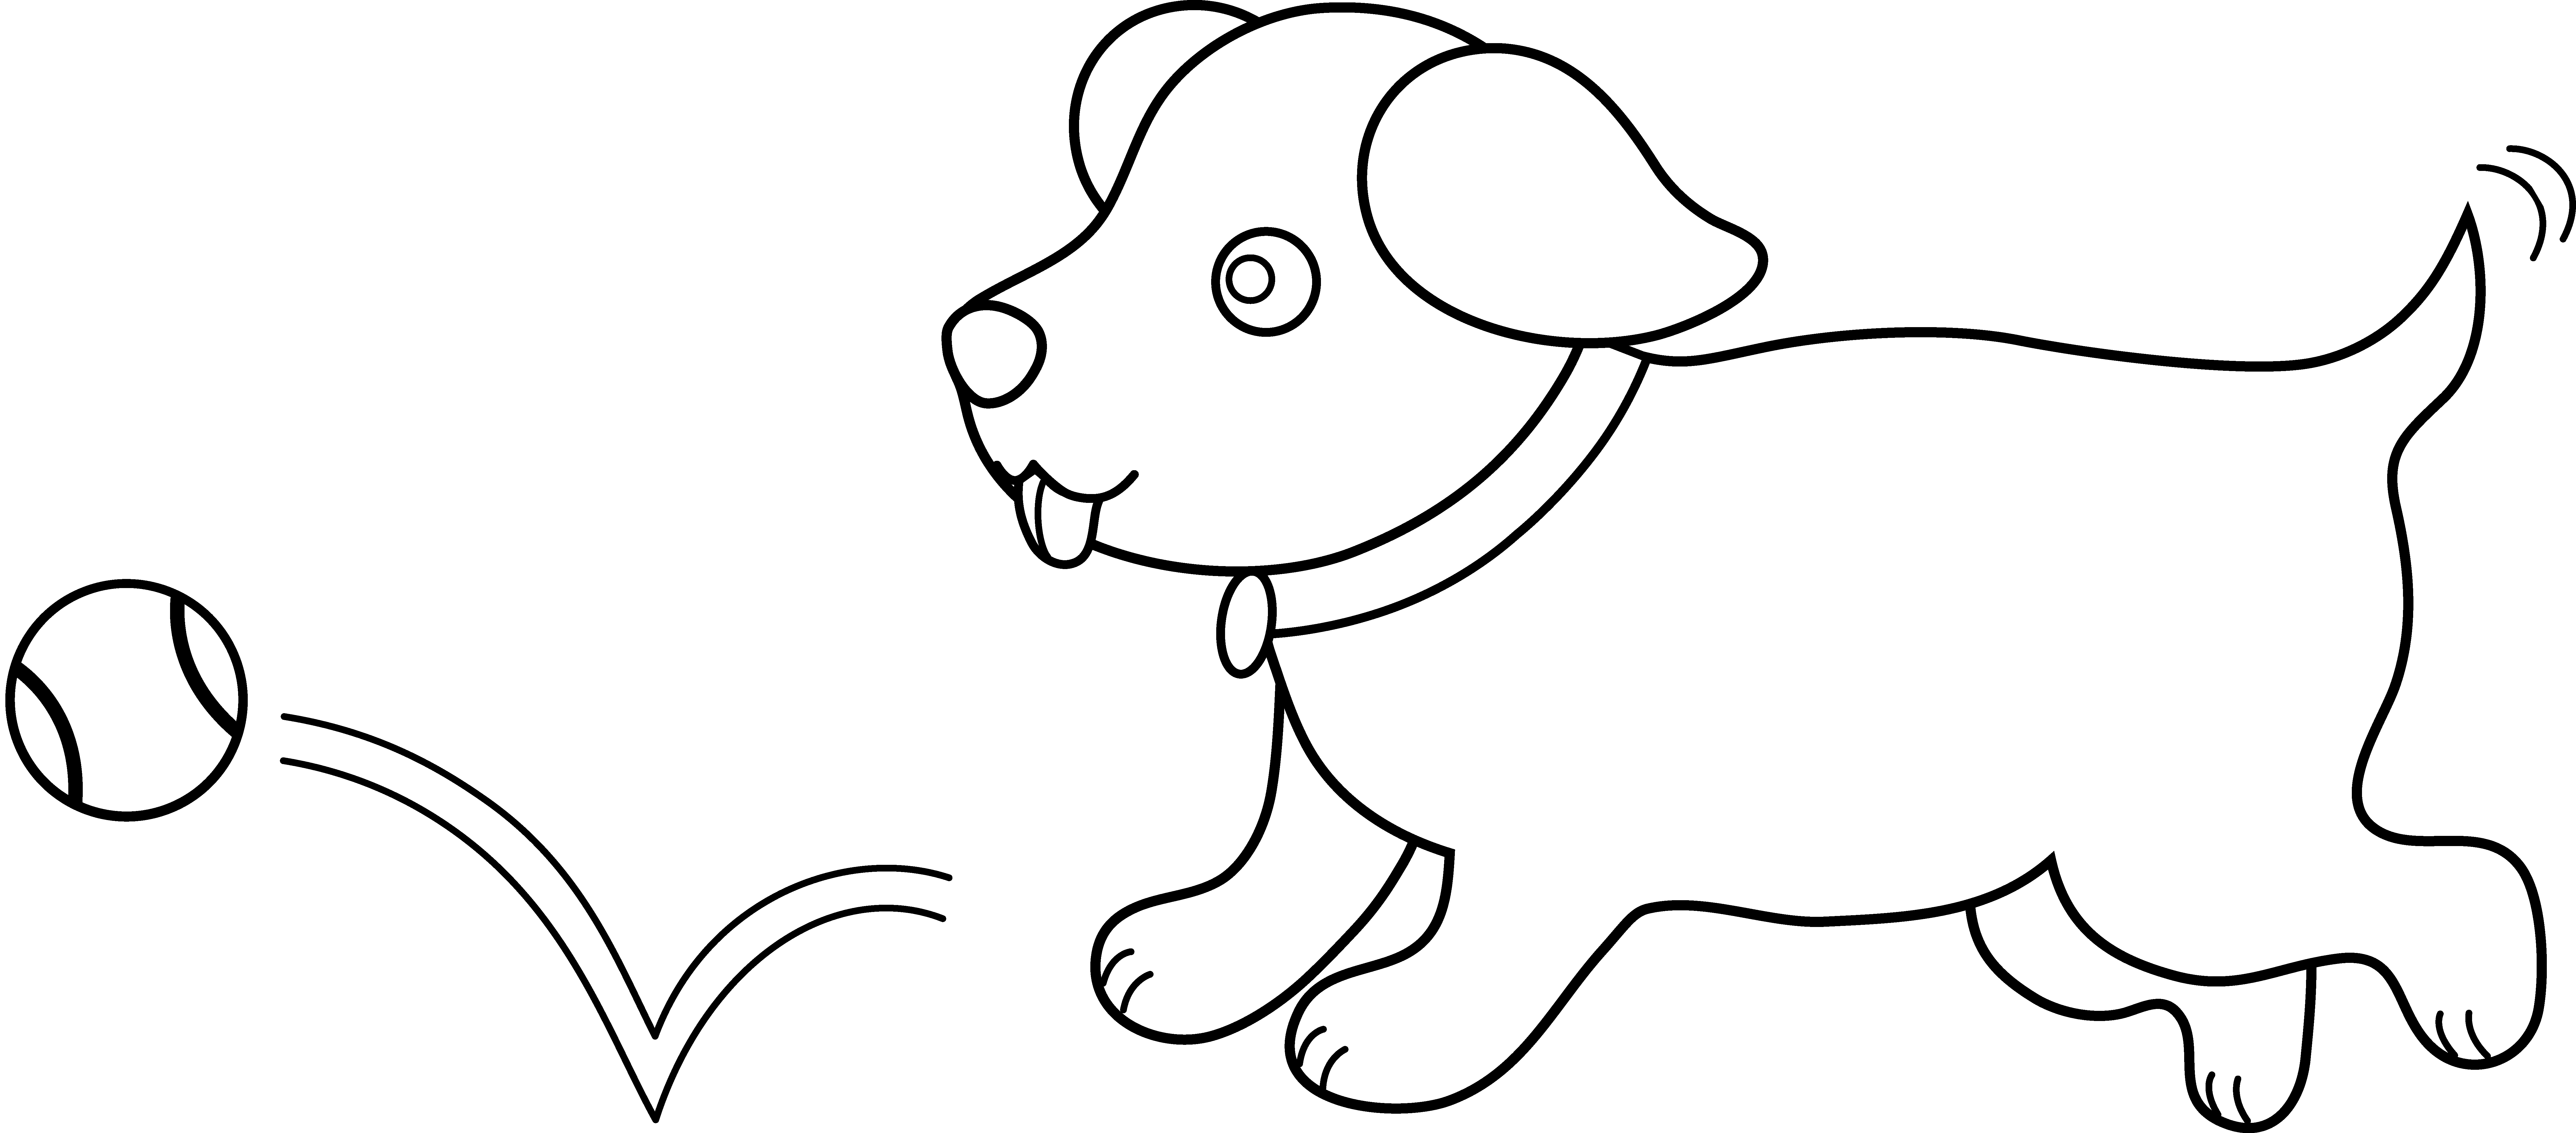 Line art of playing. Clipart puppy outline